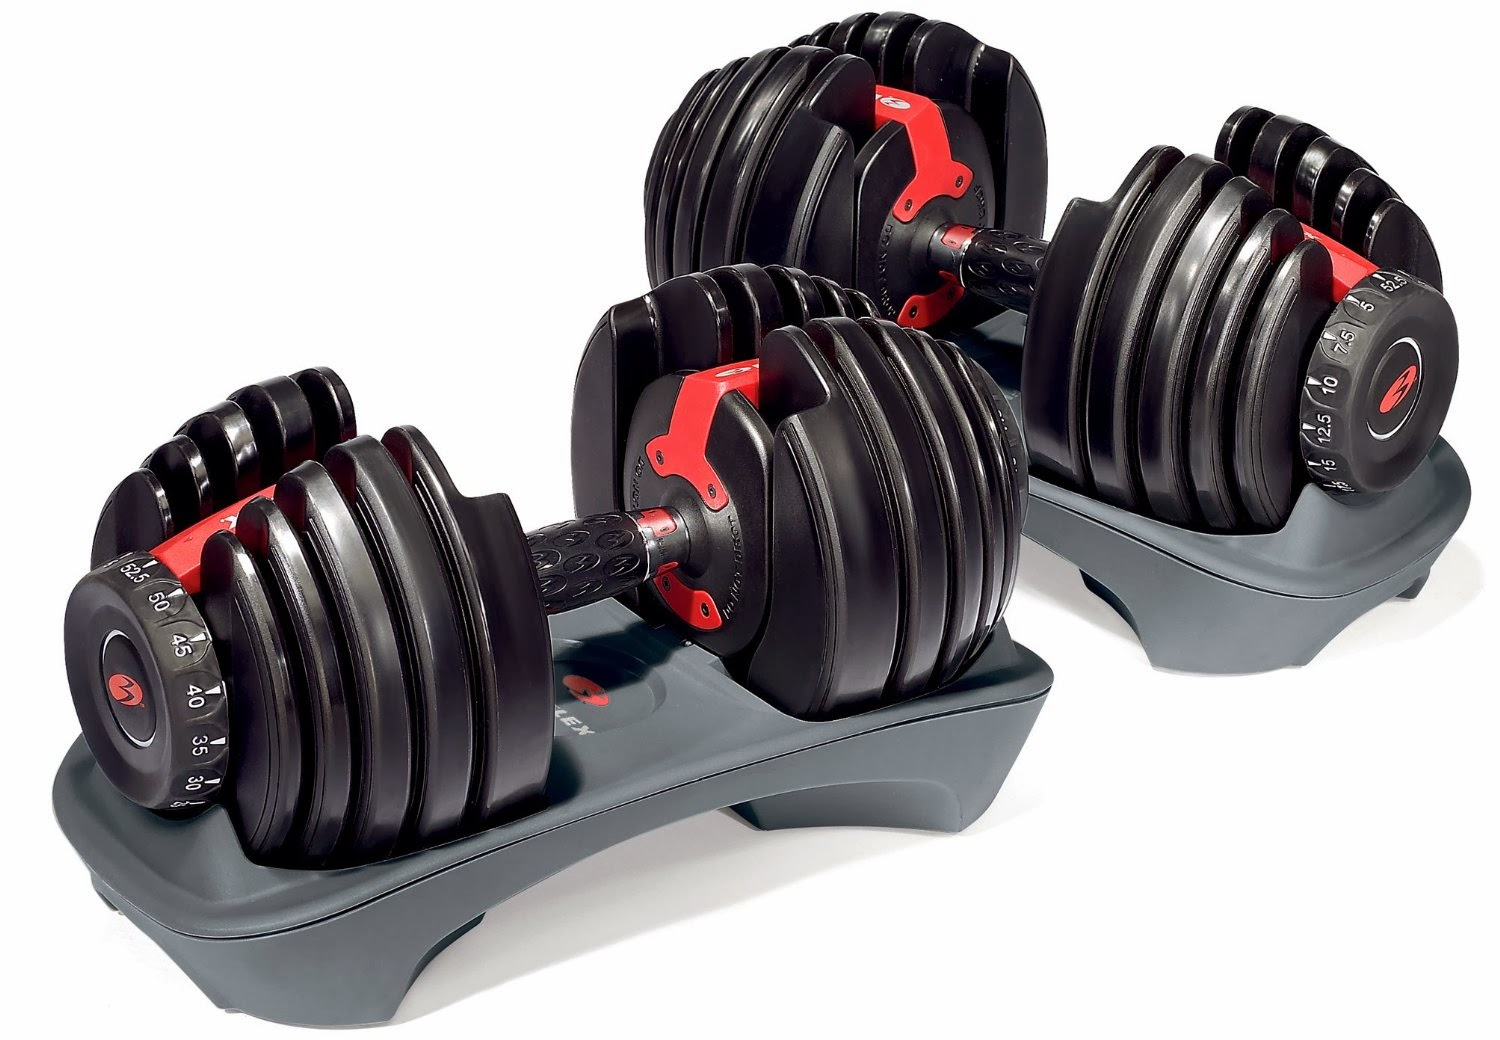 Bowflex SelectTech 552 Adjustable Dumbbells Image